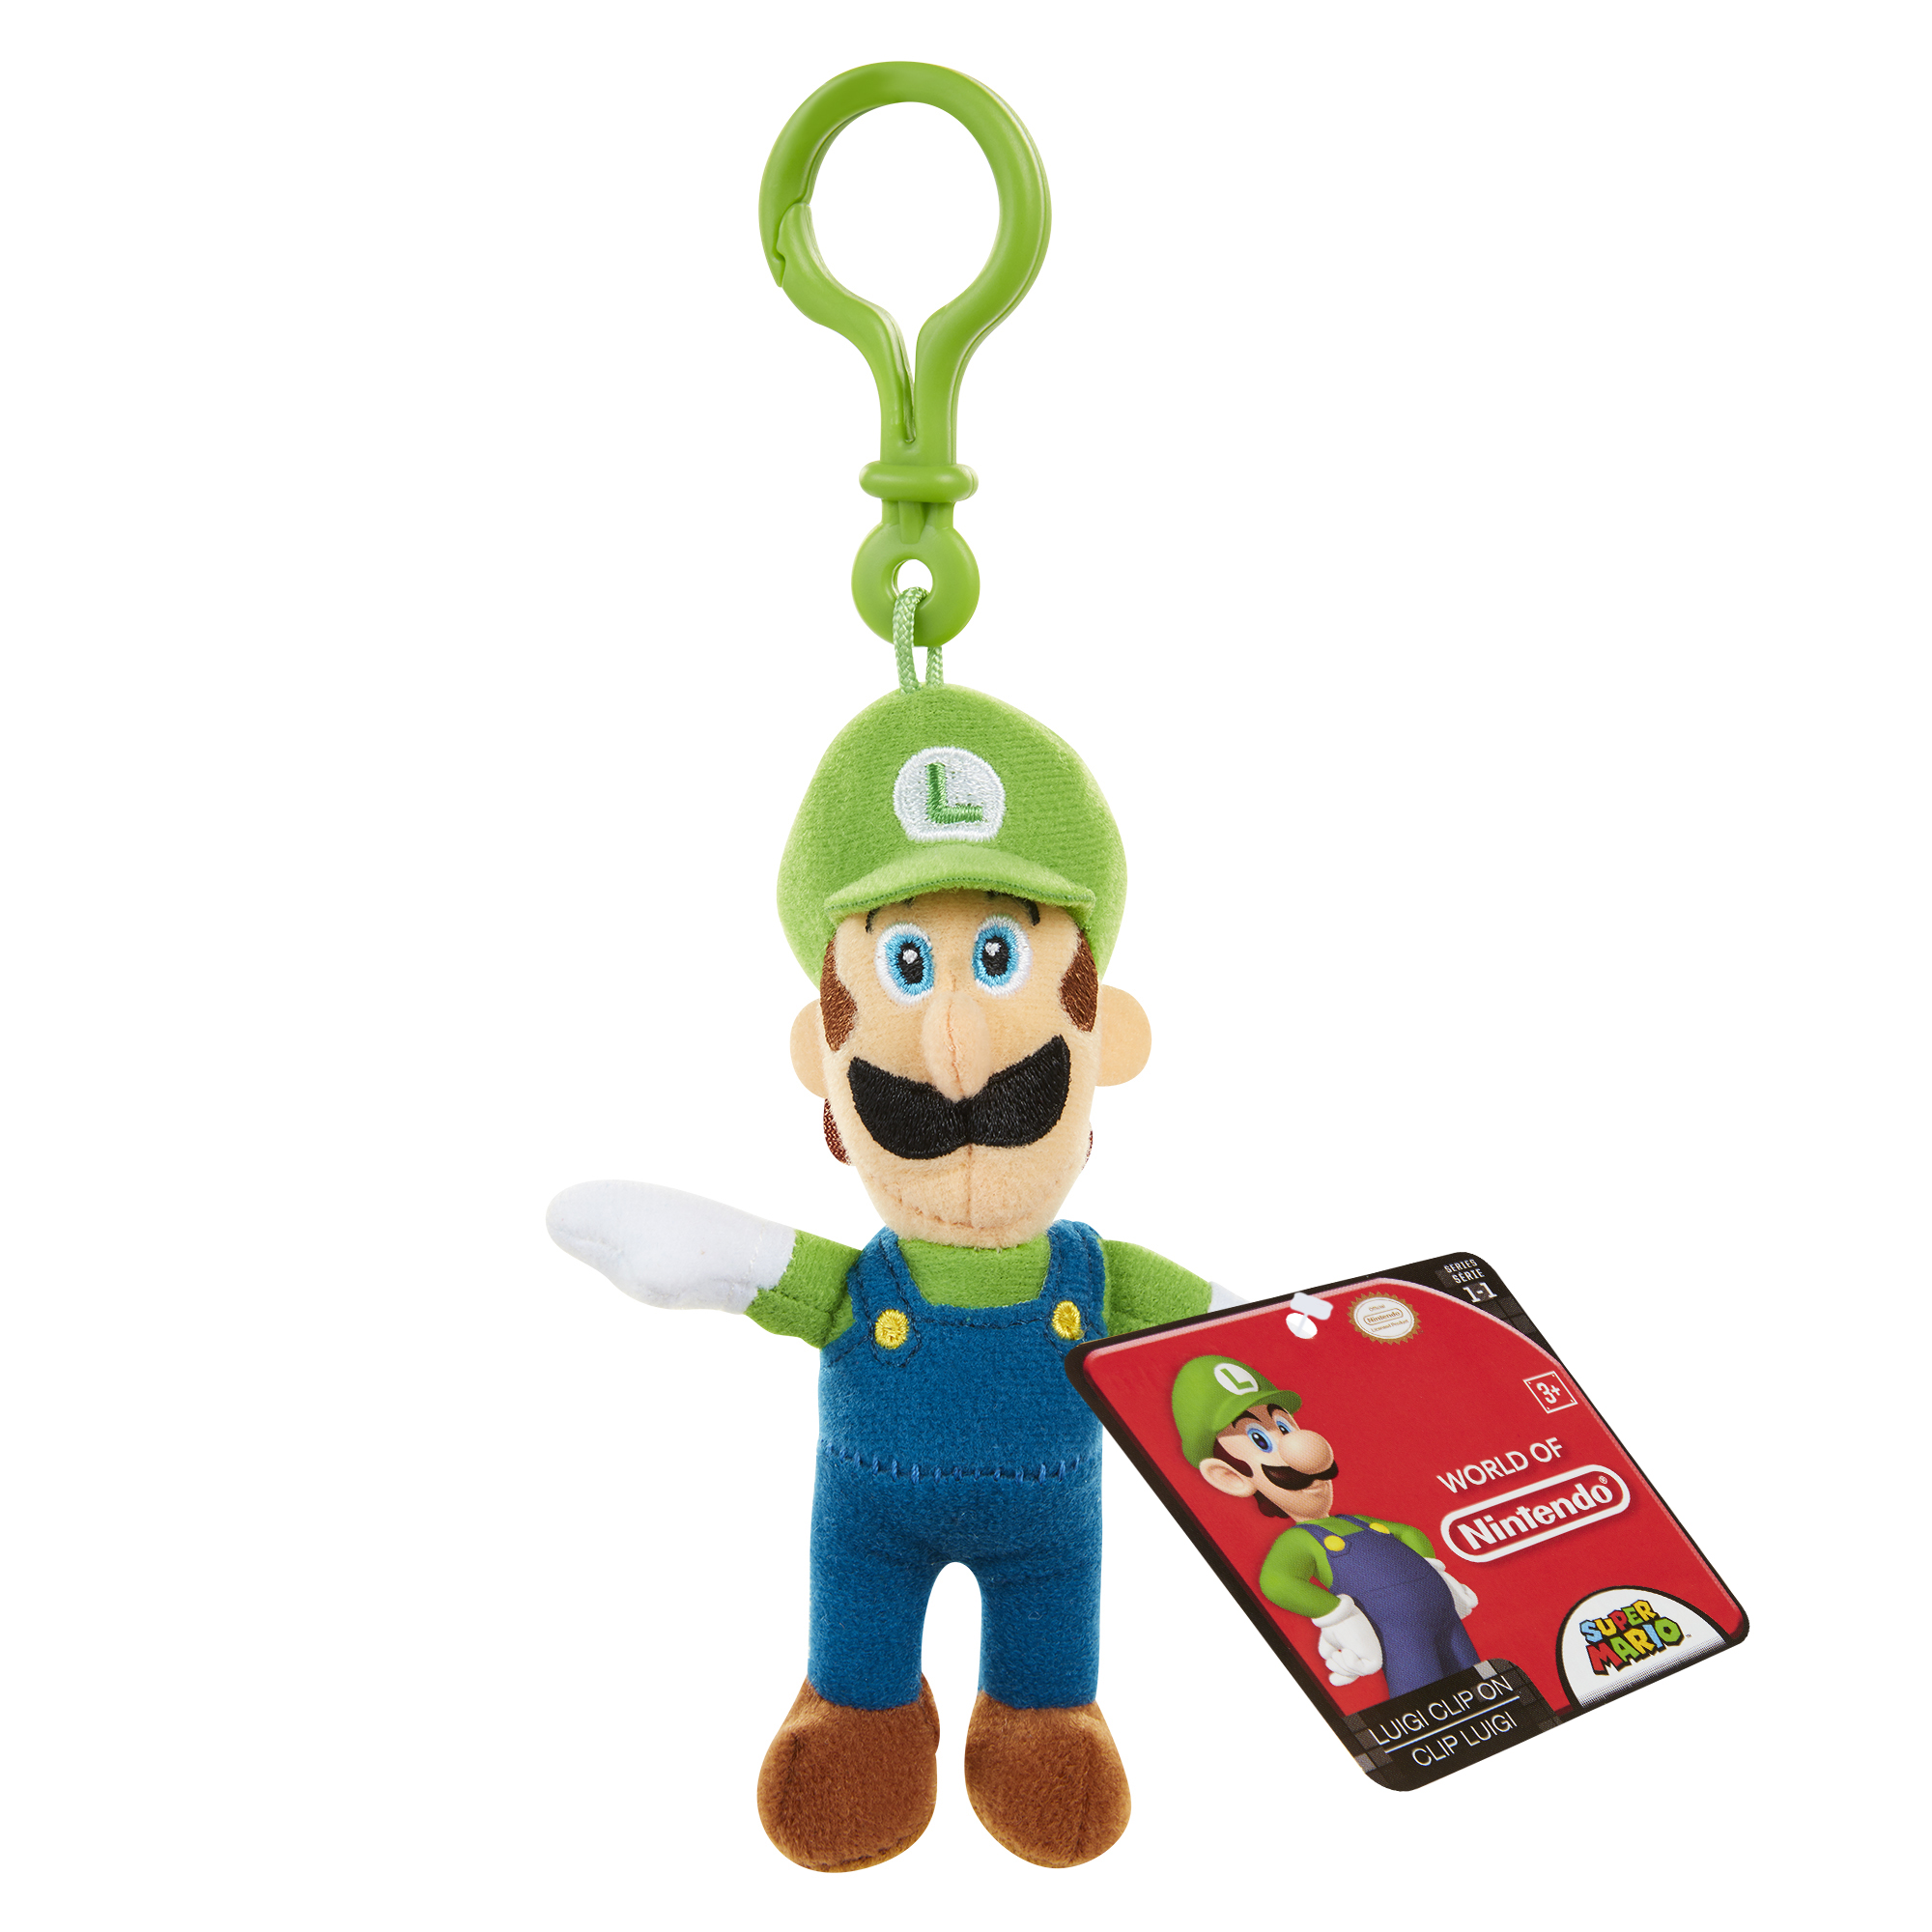 Super Mario Plush Hangers Wave 2 Luigi